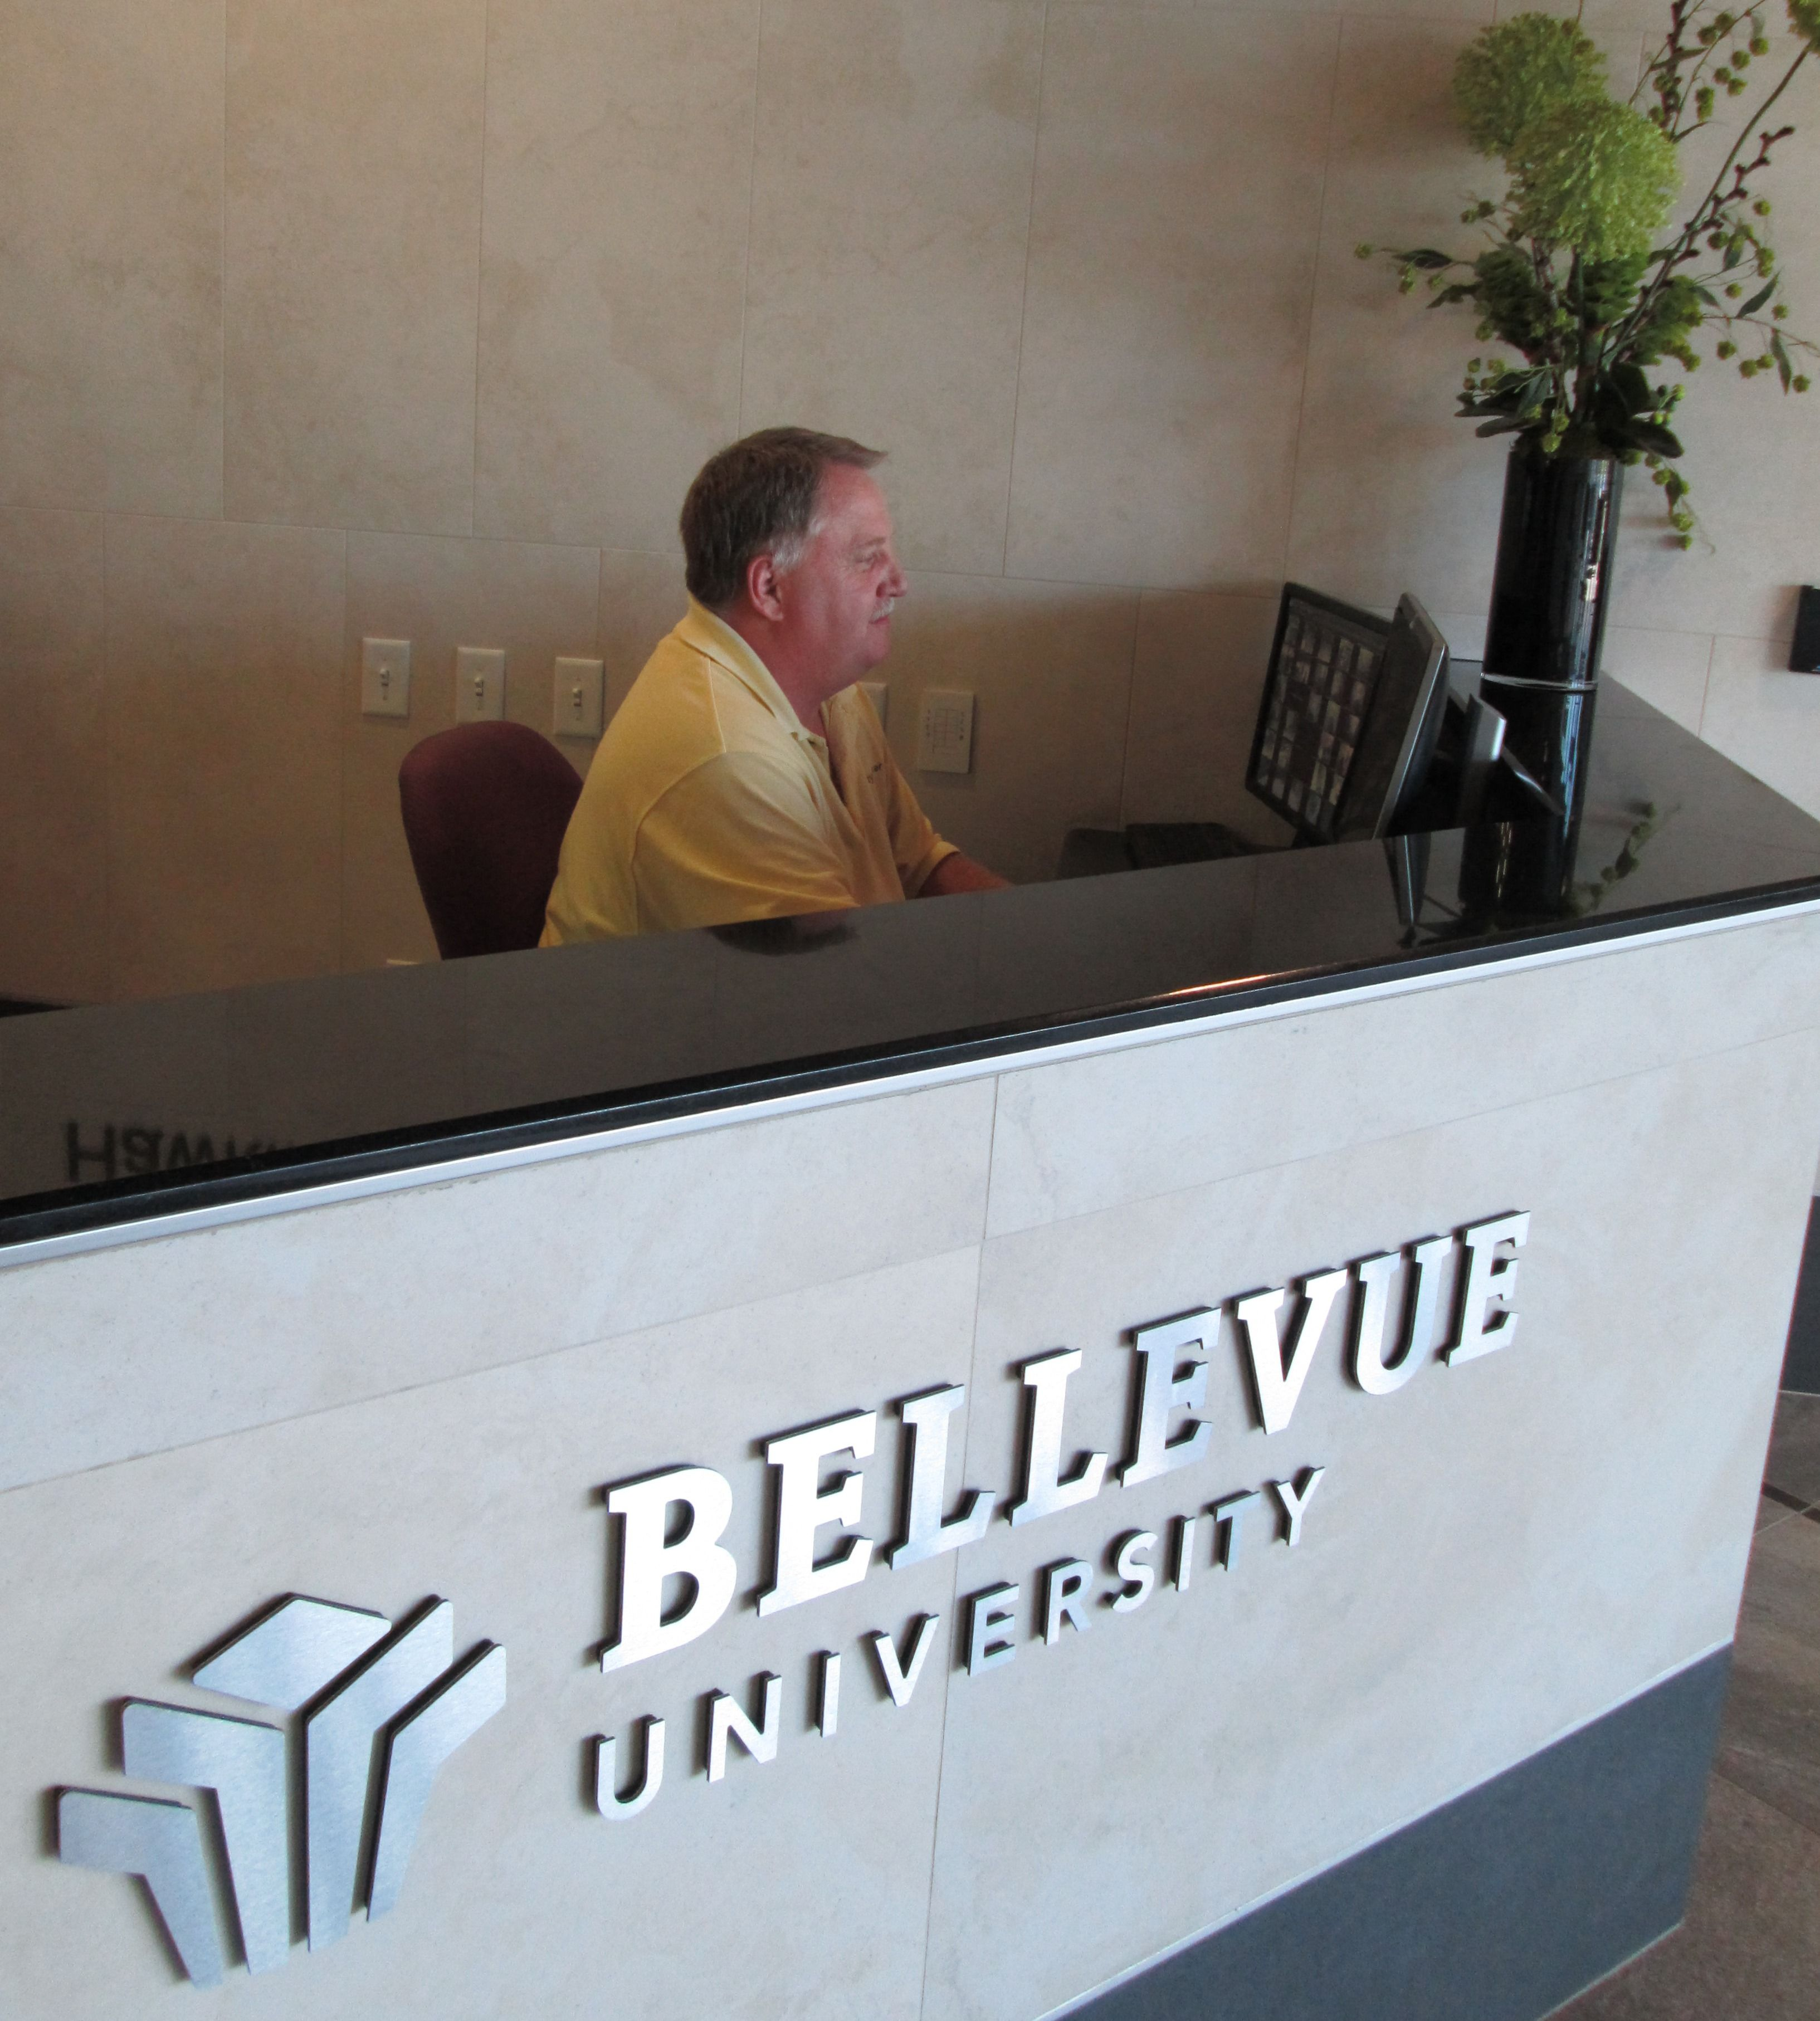 Security at Bellevue University. September is National